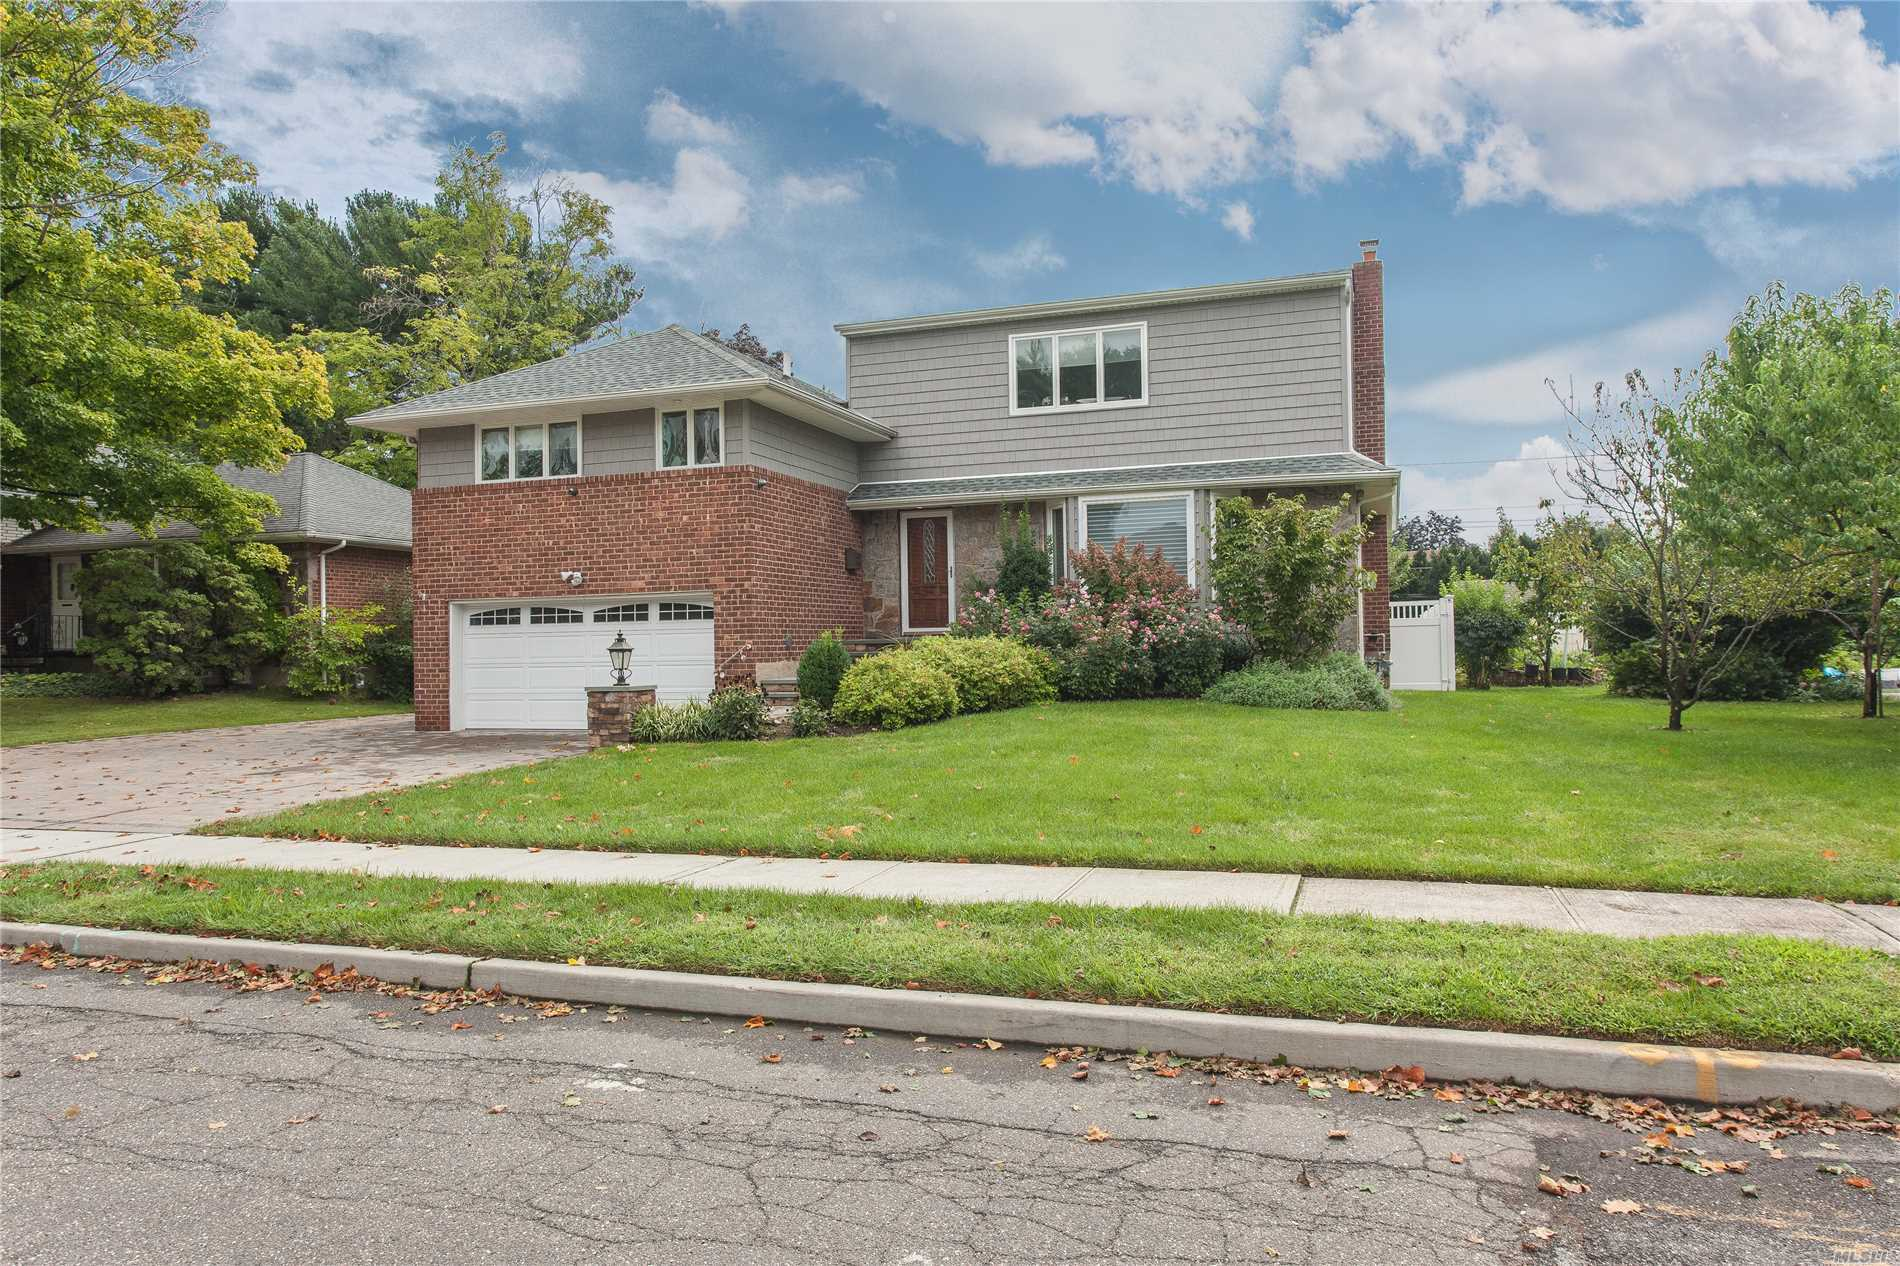 Beautiful Renovated & Expanded 4-5 Year Old Clearview Split W/4 Bdrms & 3.5 Bths. Perfect Mid Block Location. Engineered 4 In Hrdwd Flrs, Cust Millwork, Opn Flr Plan. Lr W/Frplce, New Kit W/Wolf Range & Ovens, Ci, Coffered Ceiling, & Rad Ht. All Bdrms W/Wic. Walk Out Fr & Fab Fin Bsmnt. Ig Sprinklers, French Drain, Alarm, Full House Gen, Paver Patio. 2 Car Gar, Must See! Syosset Schools.